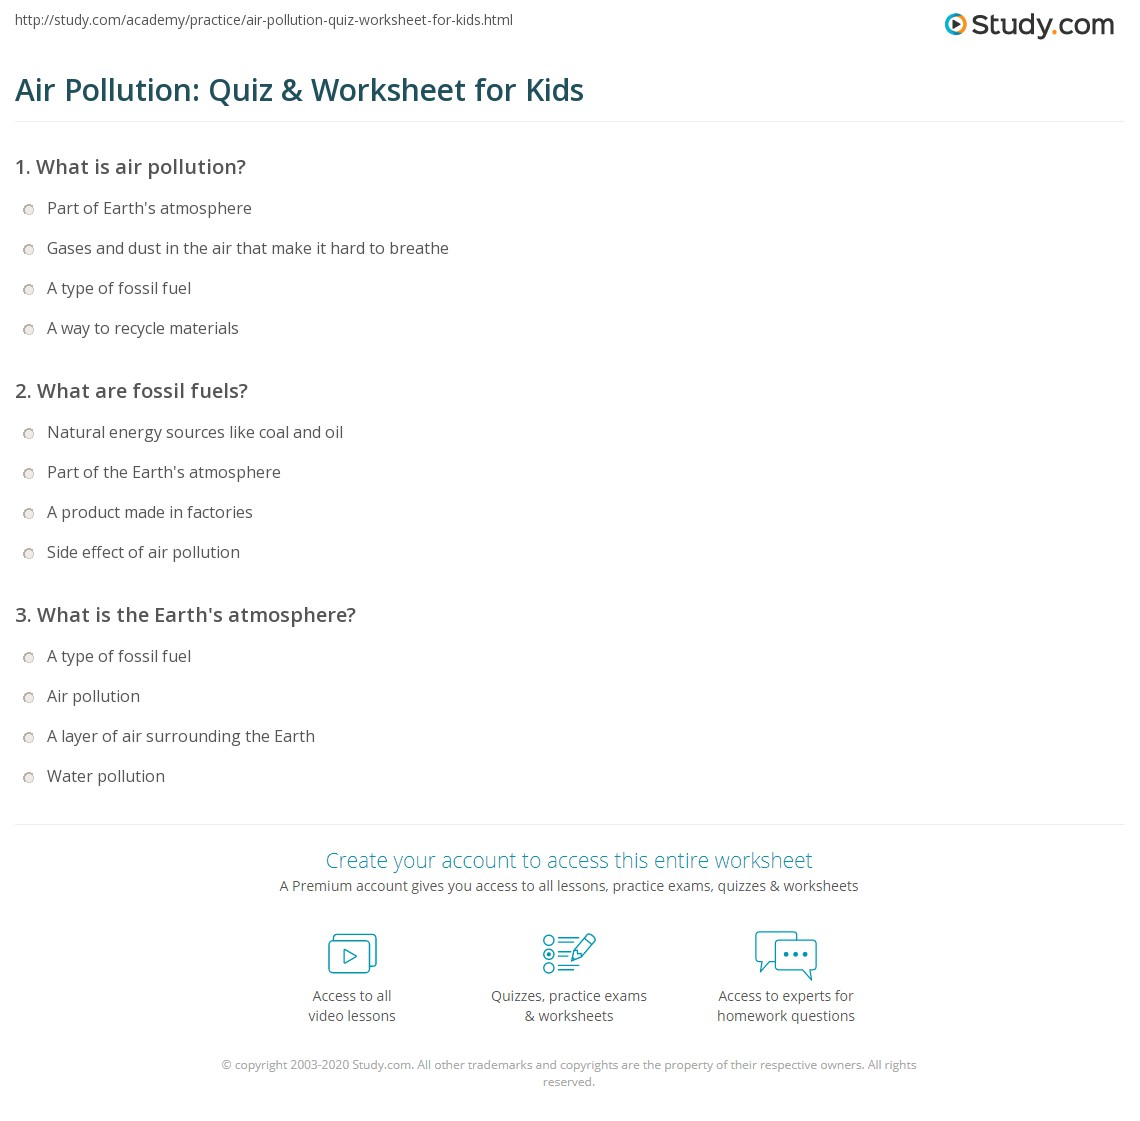 air pollution: quiz & worksheet for kids | study